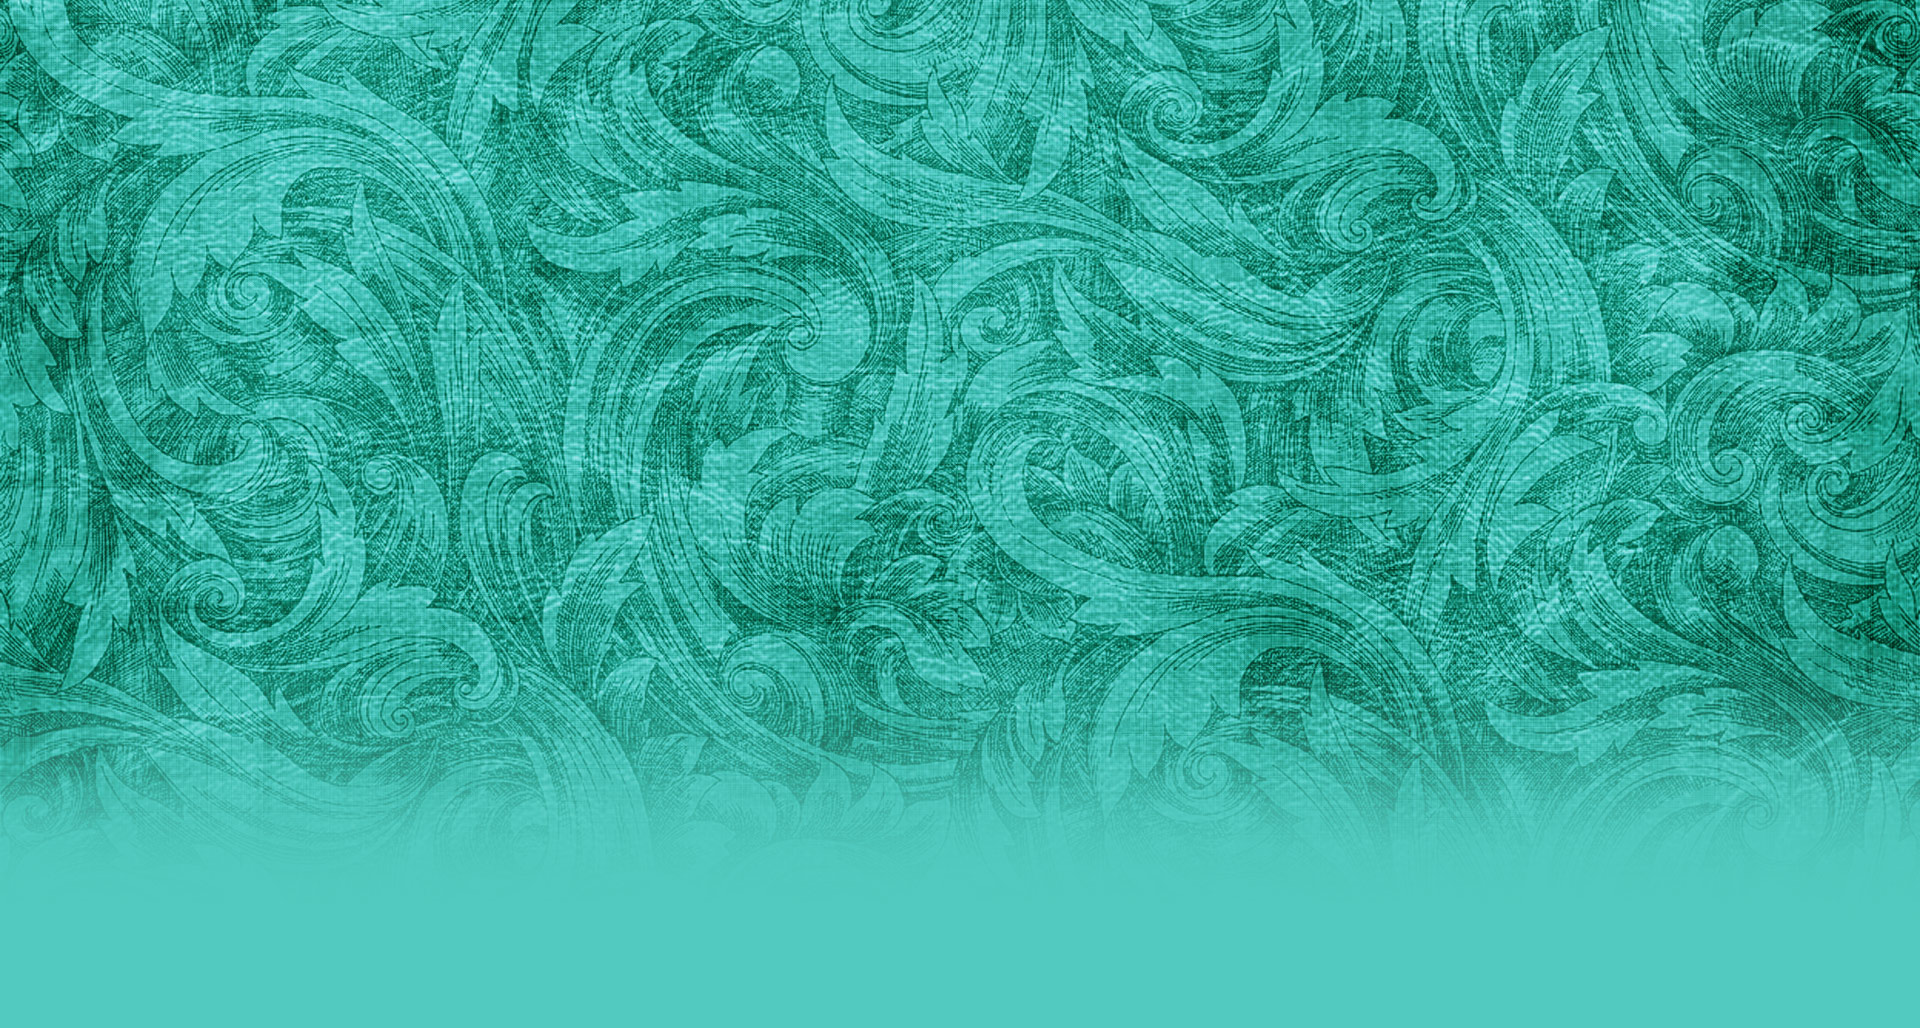 Turquoise waves texture seamless